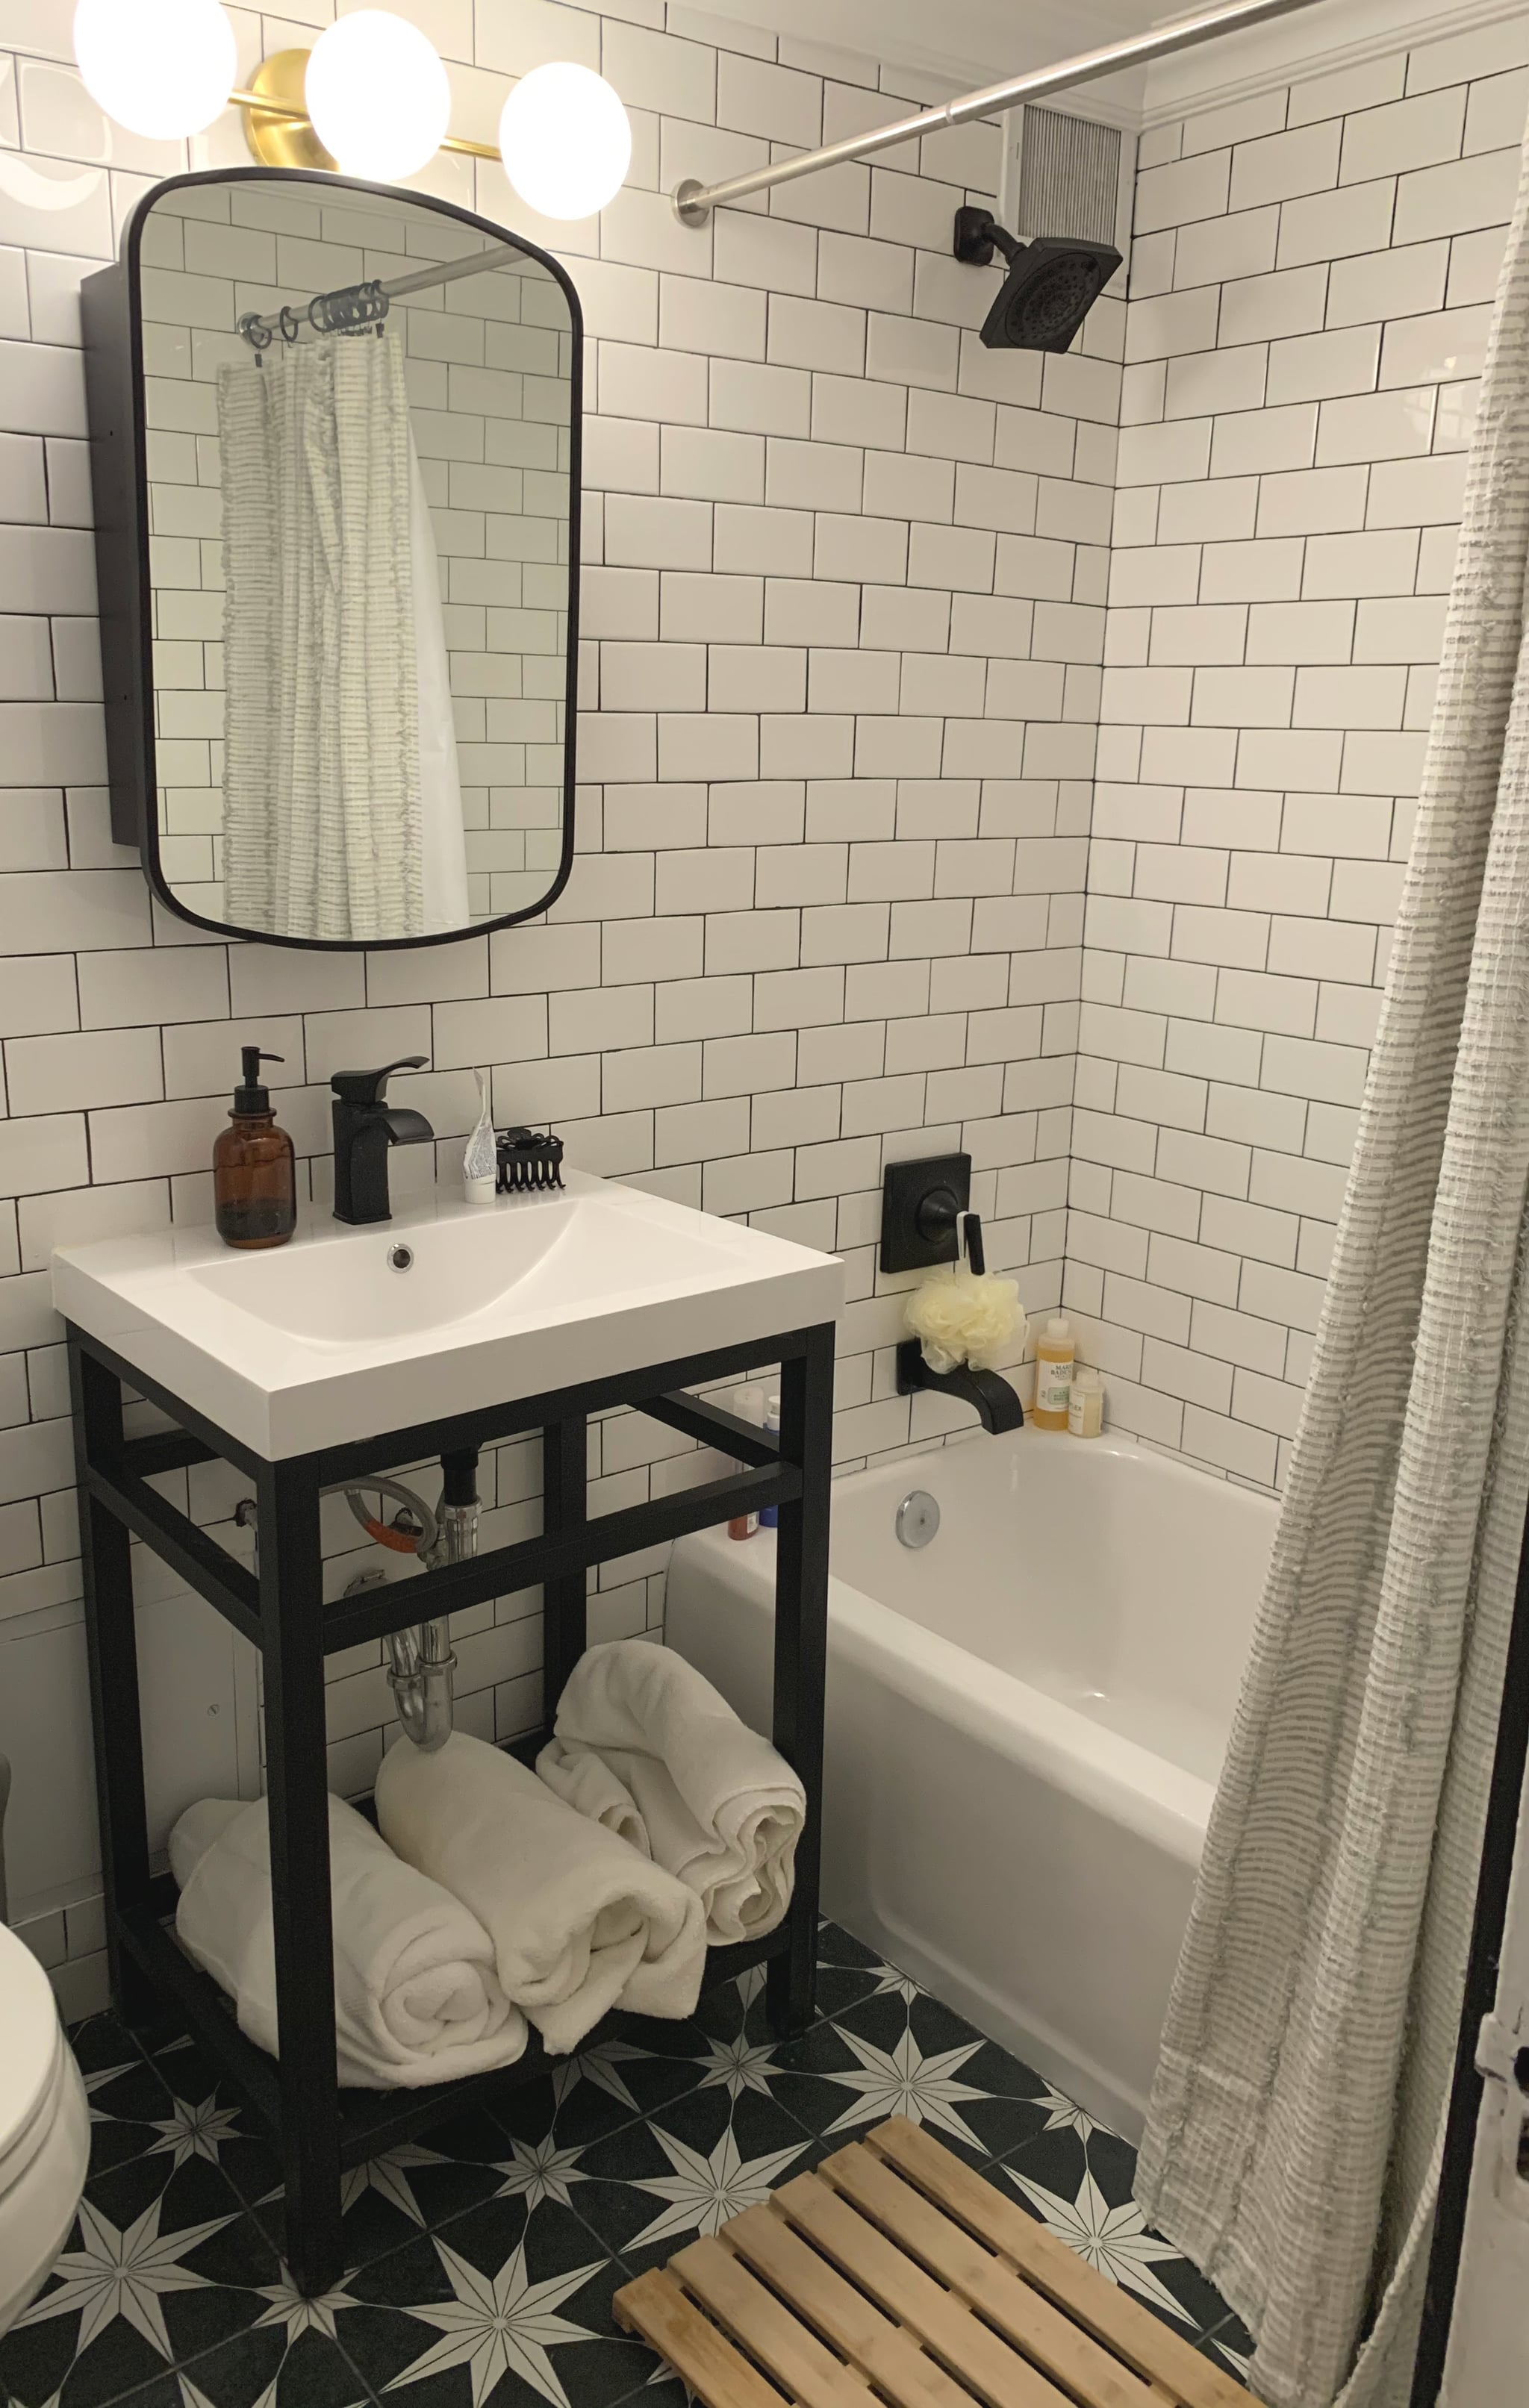 Bathroom We Totally Redecorated Our Brooklyn Apartment With These 35 Unique Pieces Popsugar Home Photo 31